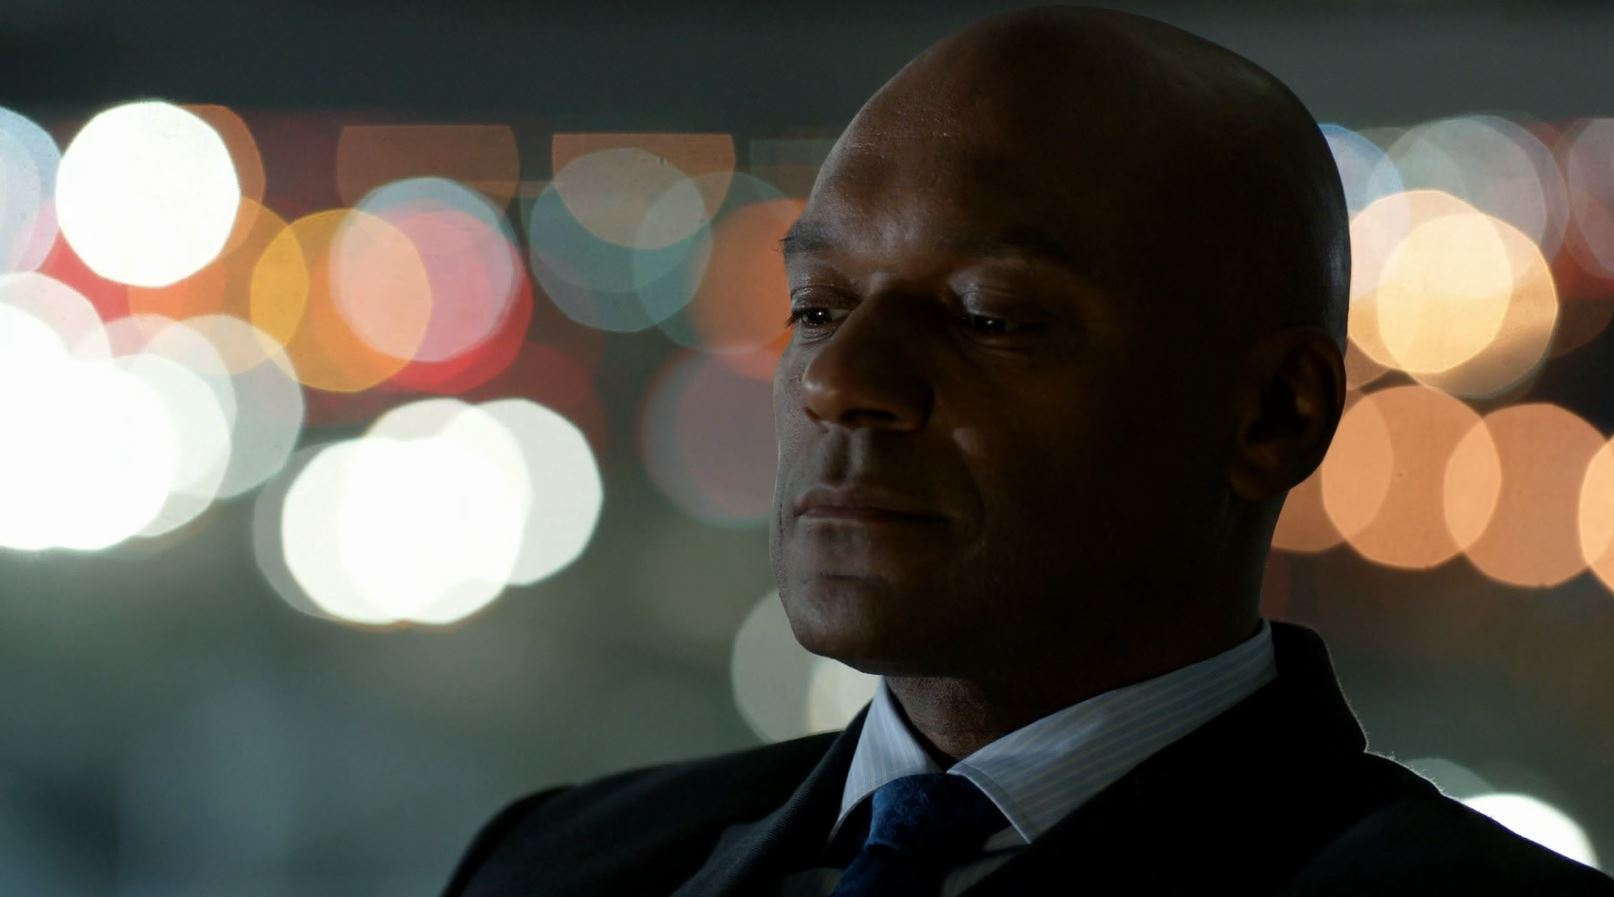 Colin Salmon as Jarrod Sands. Limitless S1Ep19 A Dog's Breakfast Review